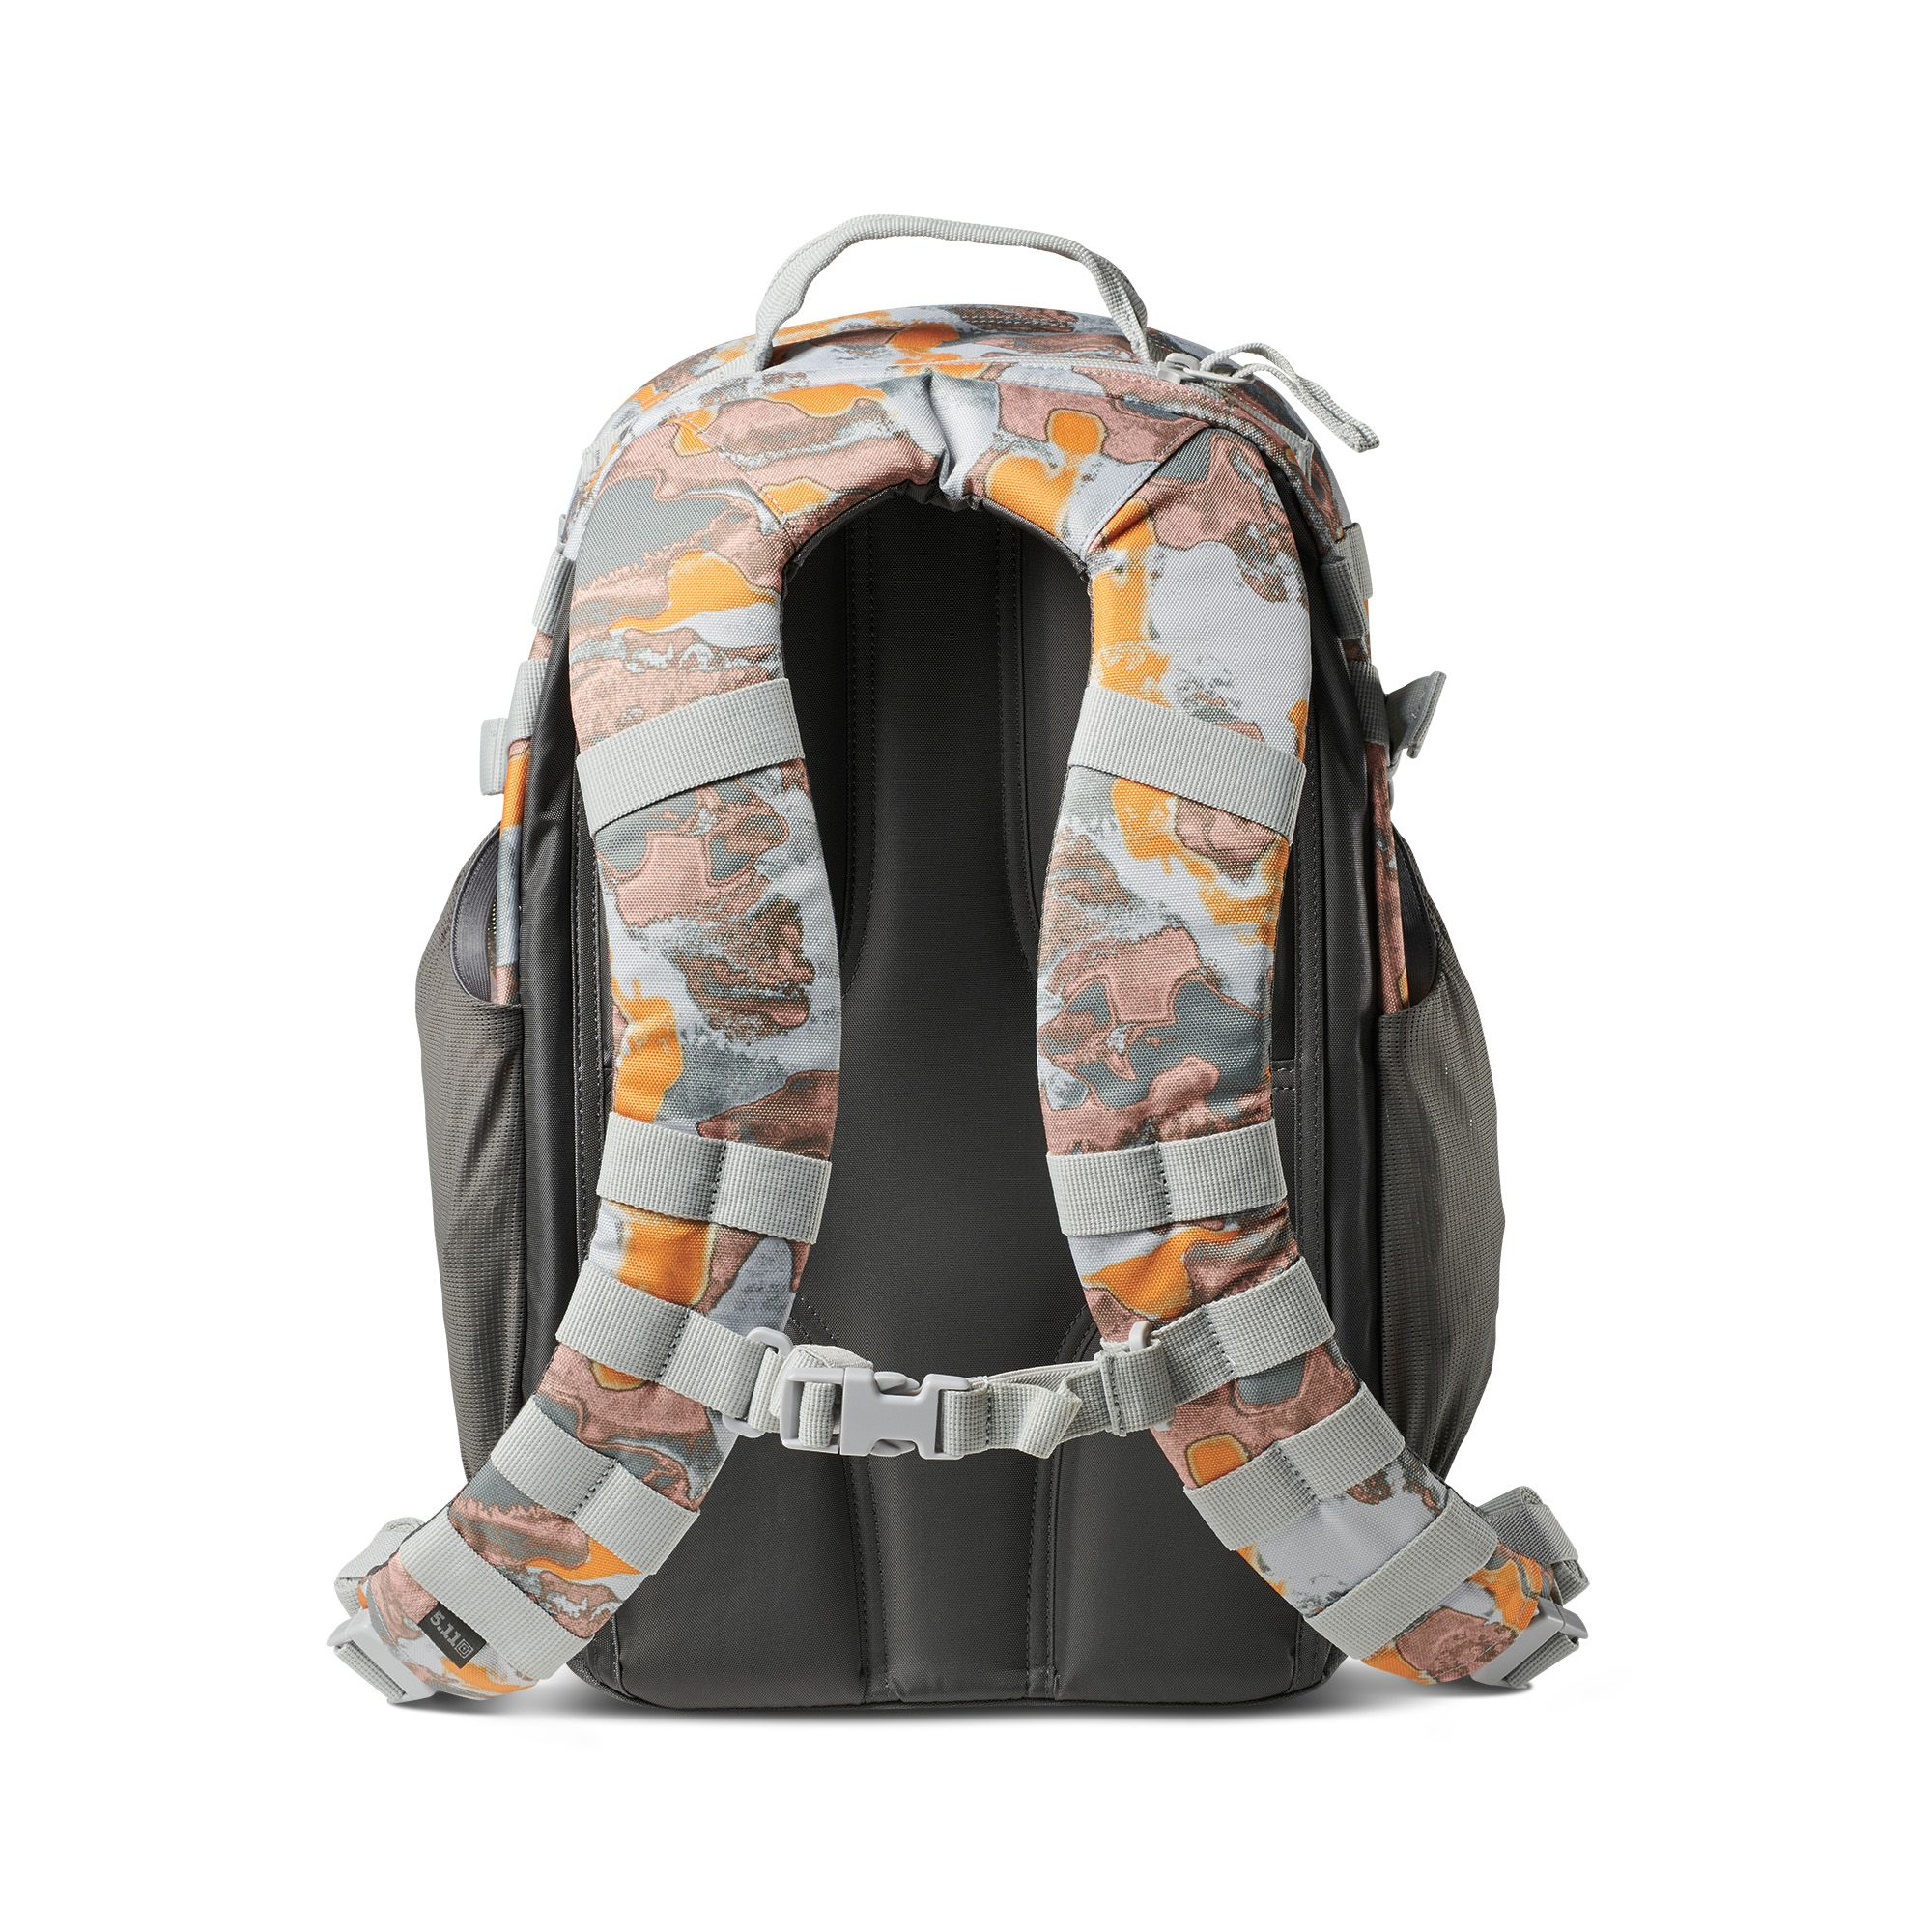 Balo 5.11 Tactical MIRA 2-IN-1 PACK 25L – AMBR Horizon